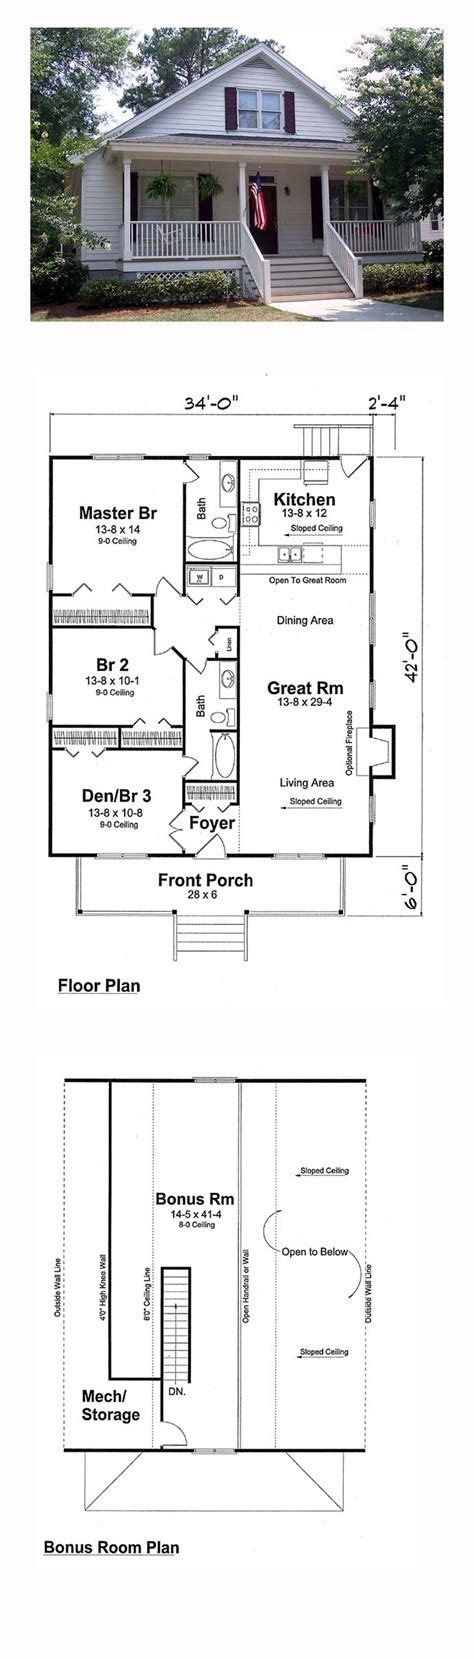 tree house condo floor plan house plan best plans images on small houses